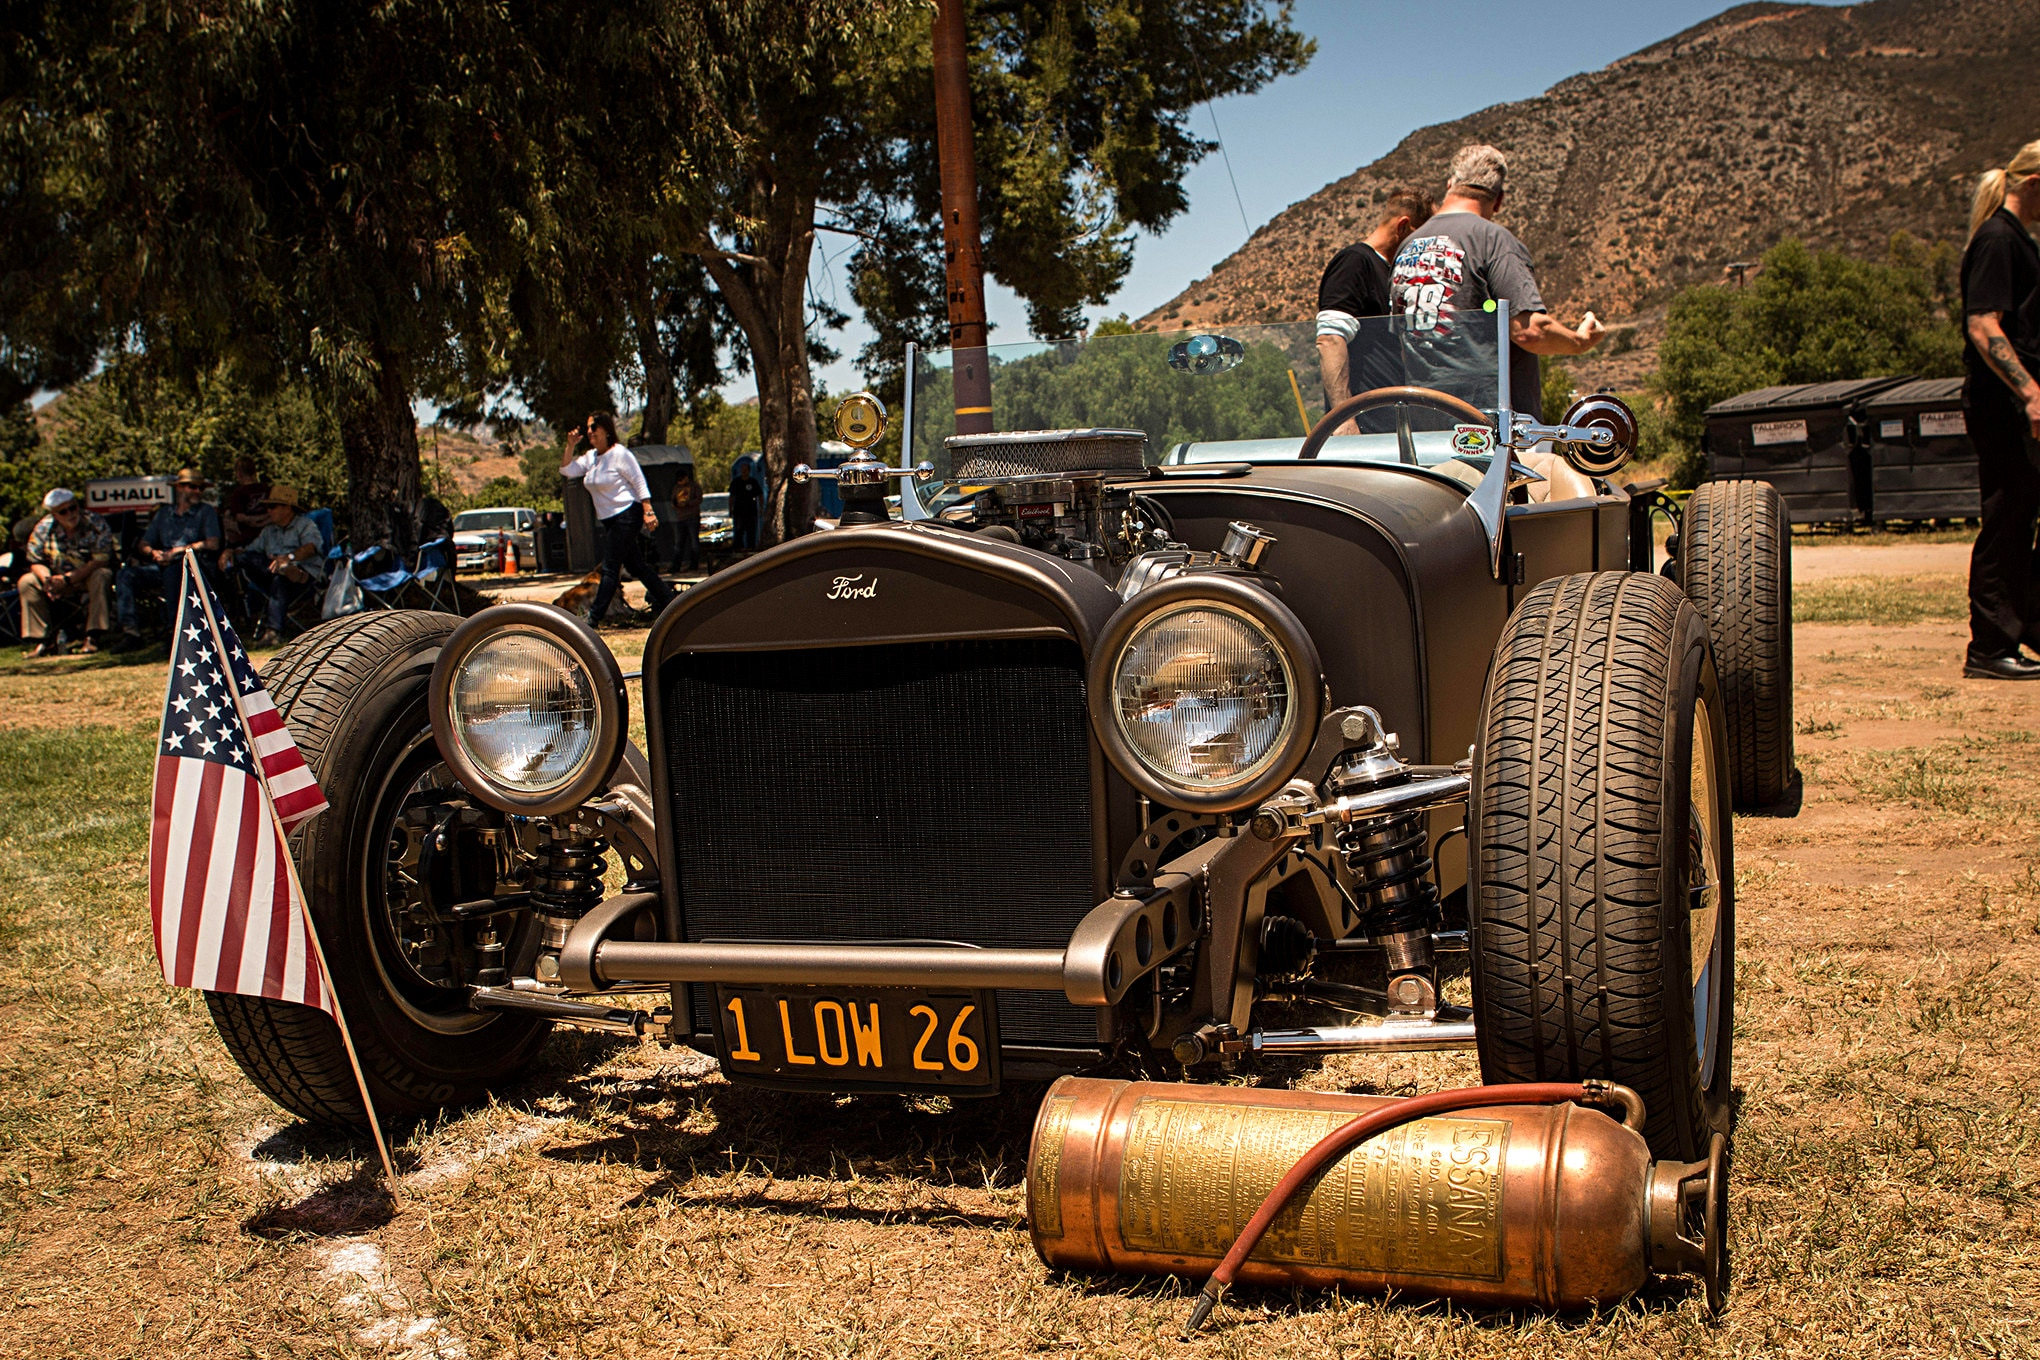 Pre-War Cars From The 2018 Fallbrook Car Show